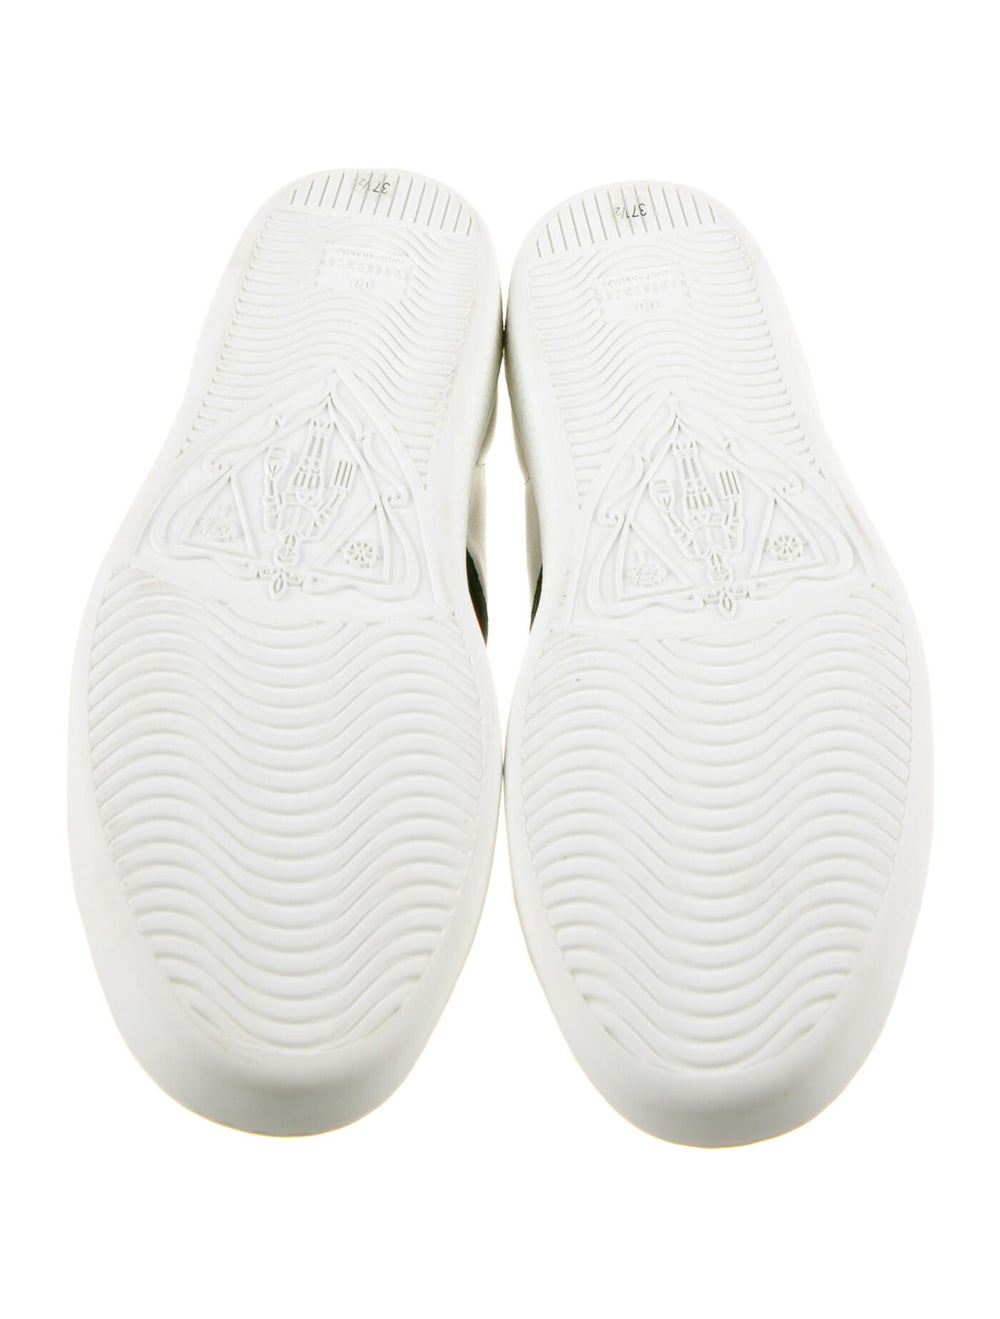 Gucci Web Accent Leather Sneakers White - image 5